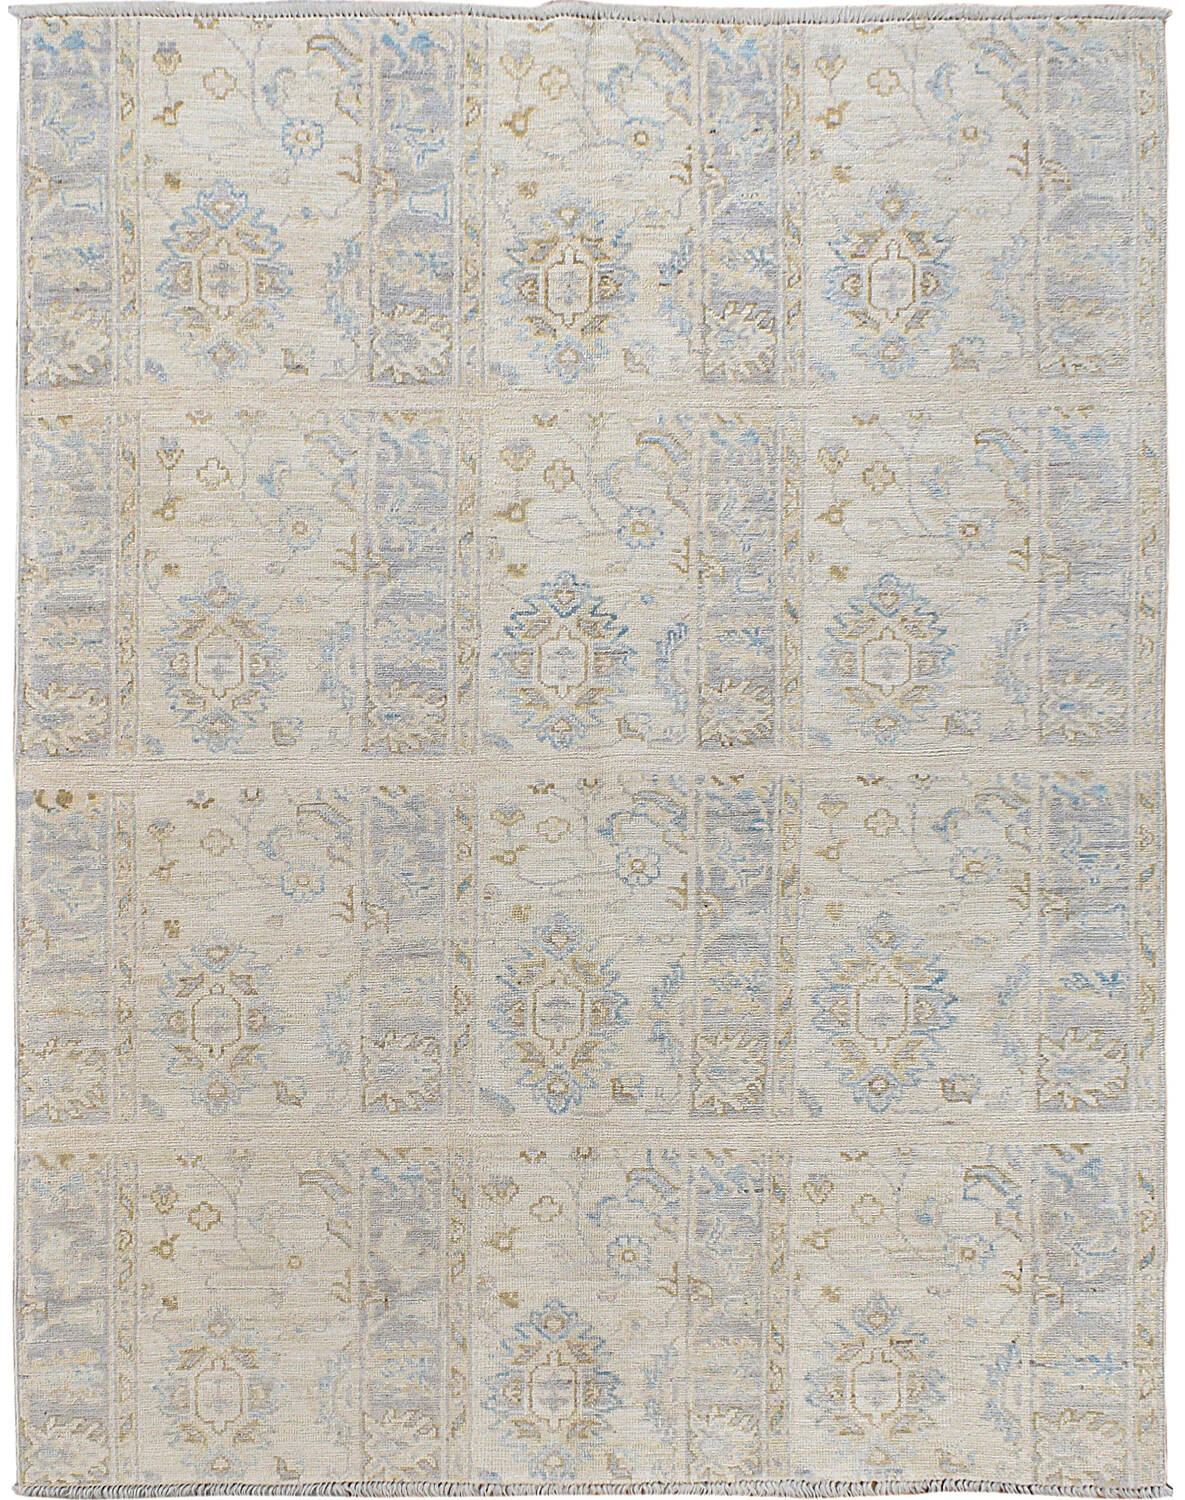 Muted Floral Oushak Turkish Area Rug 5x6 image 1